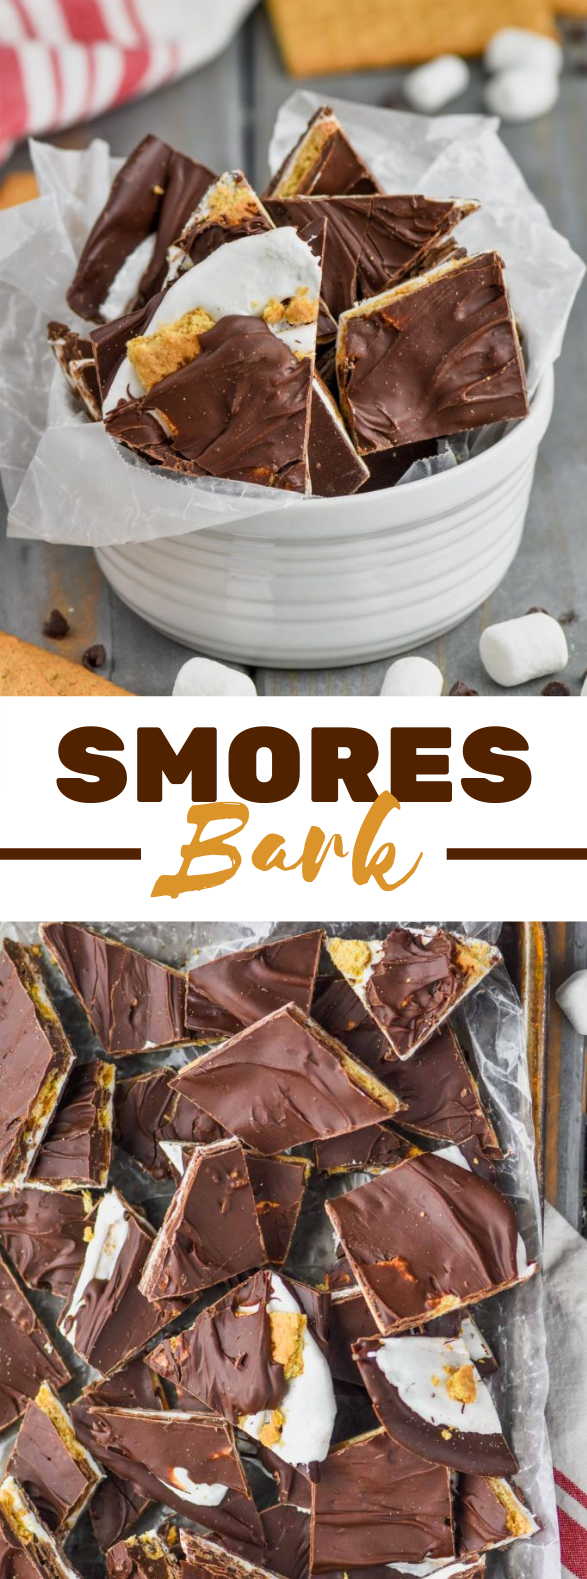 S'MORES CHOCOLATE BARK #simplerecipes #desserts